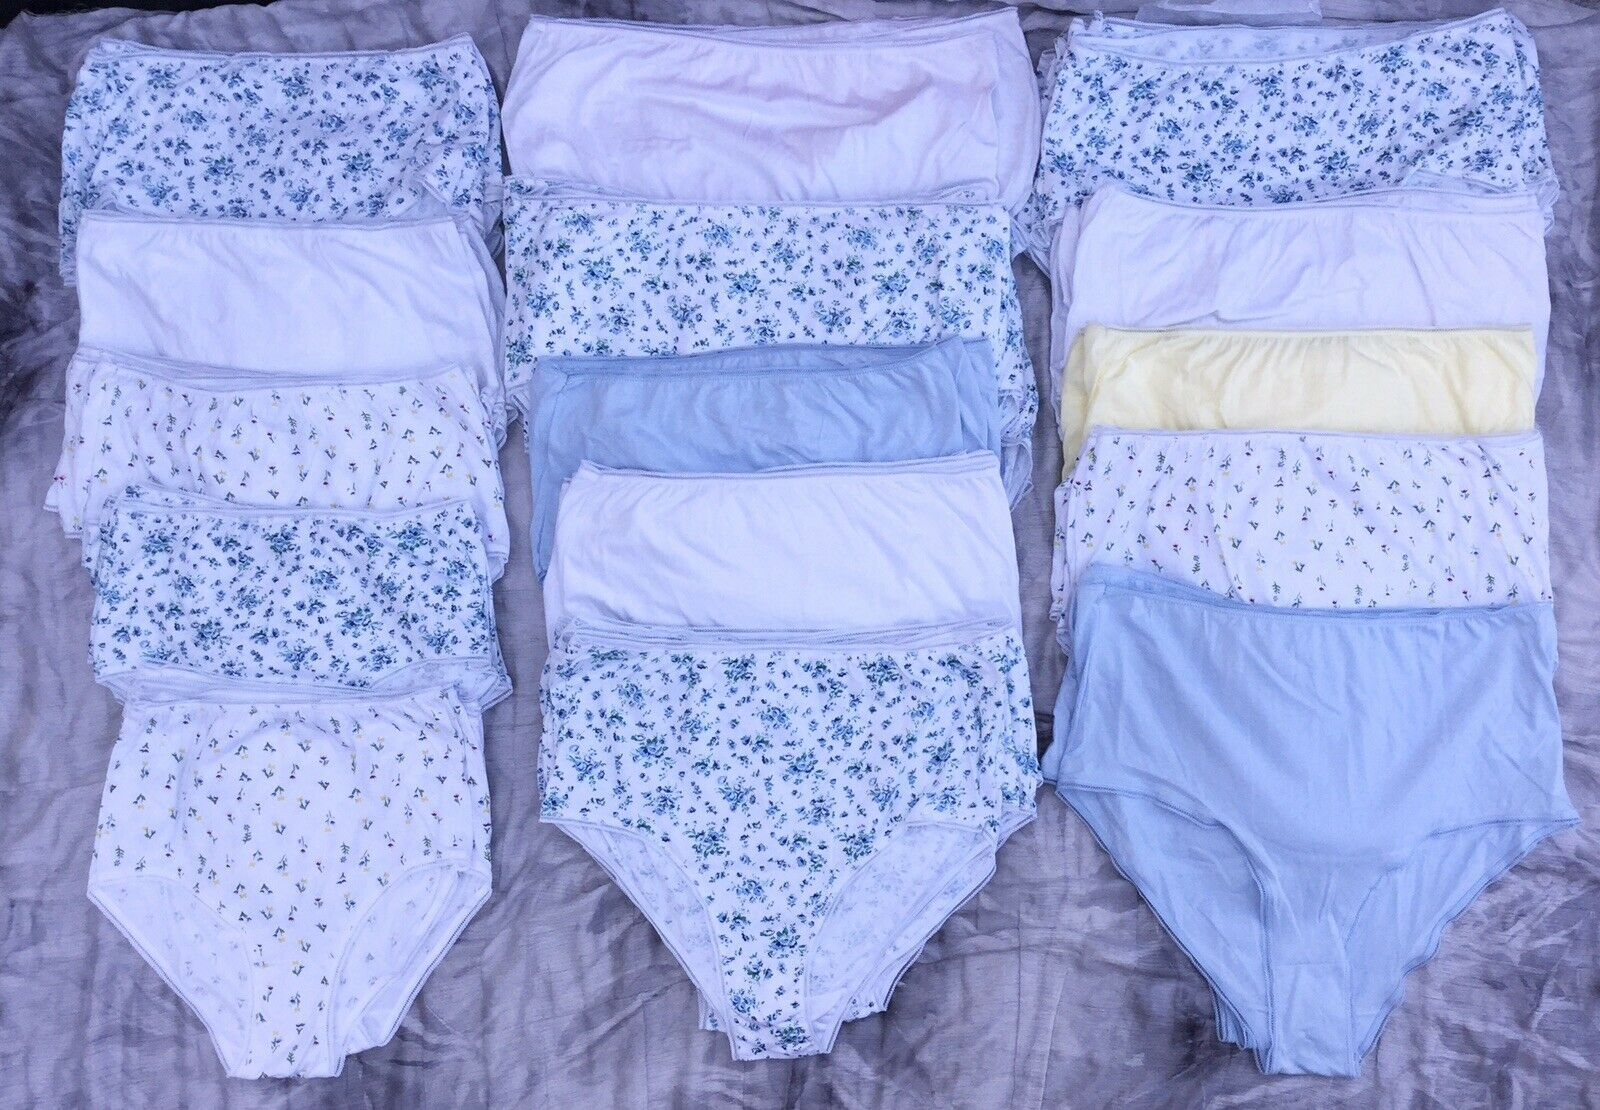 Damart 100% Cotton Mama Full Briefs Small to 3XL Lots of 115 Pairs